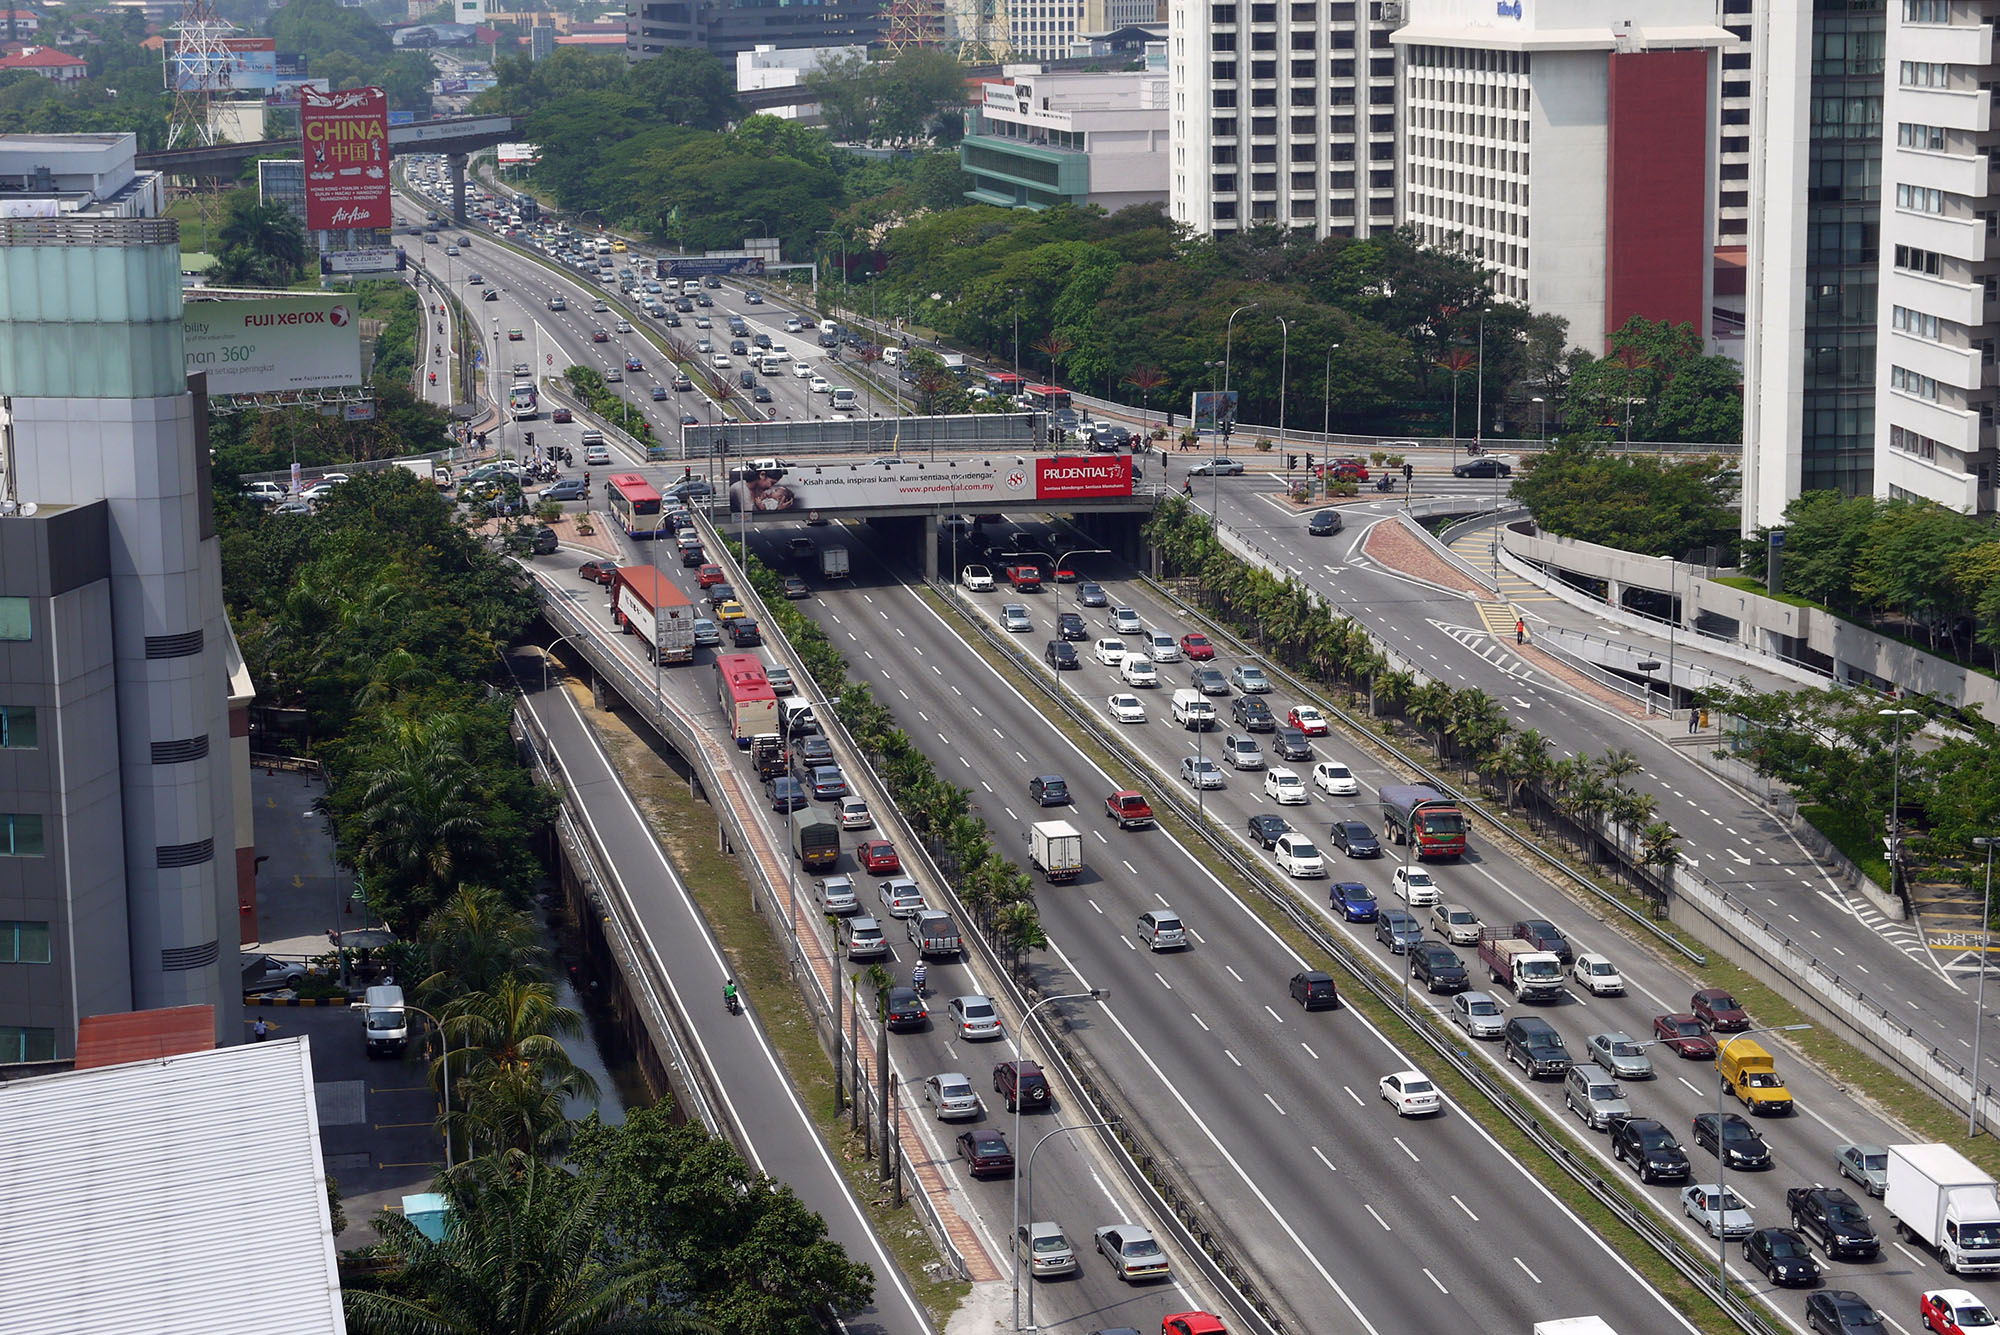 Fig. 21.5 Photo of the existing federal highway in Kuala Lumpur, Malaysia